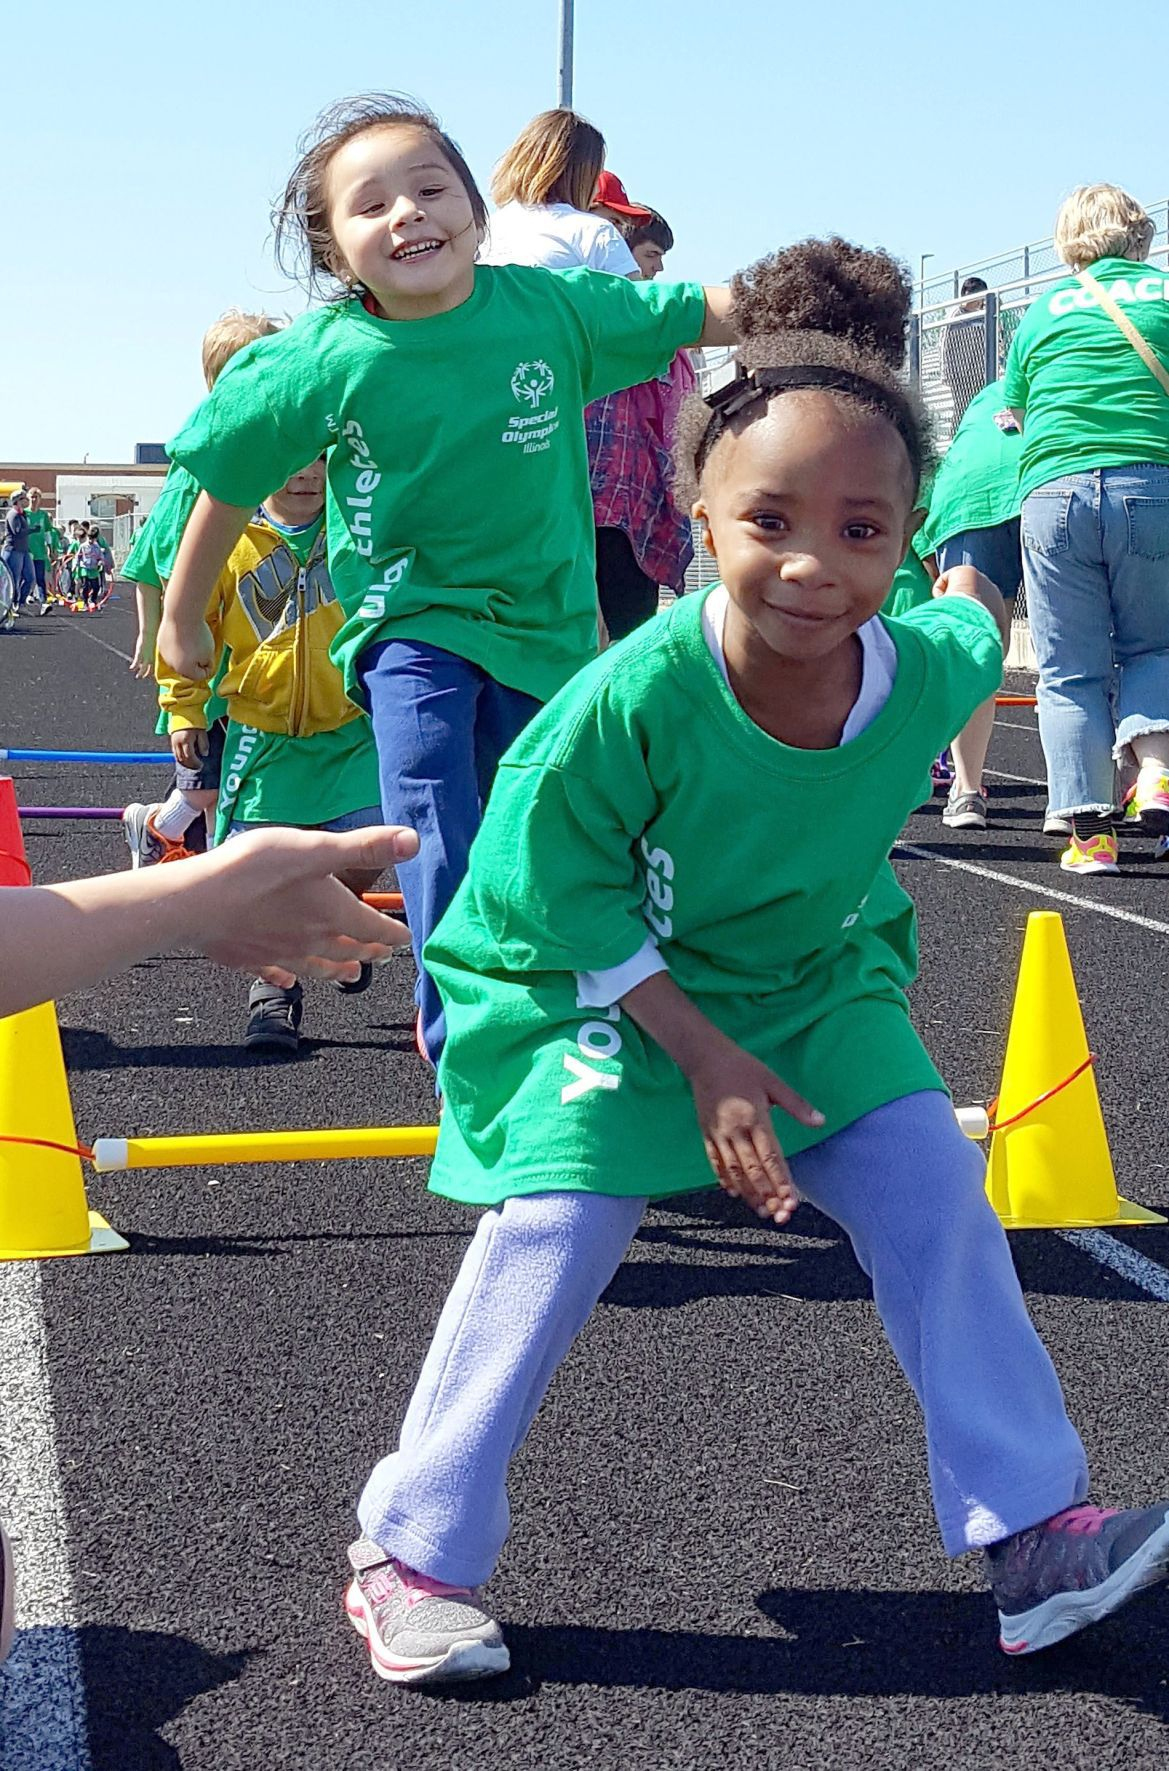 Students Build Skills Friendships At Special Olympics